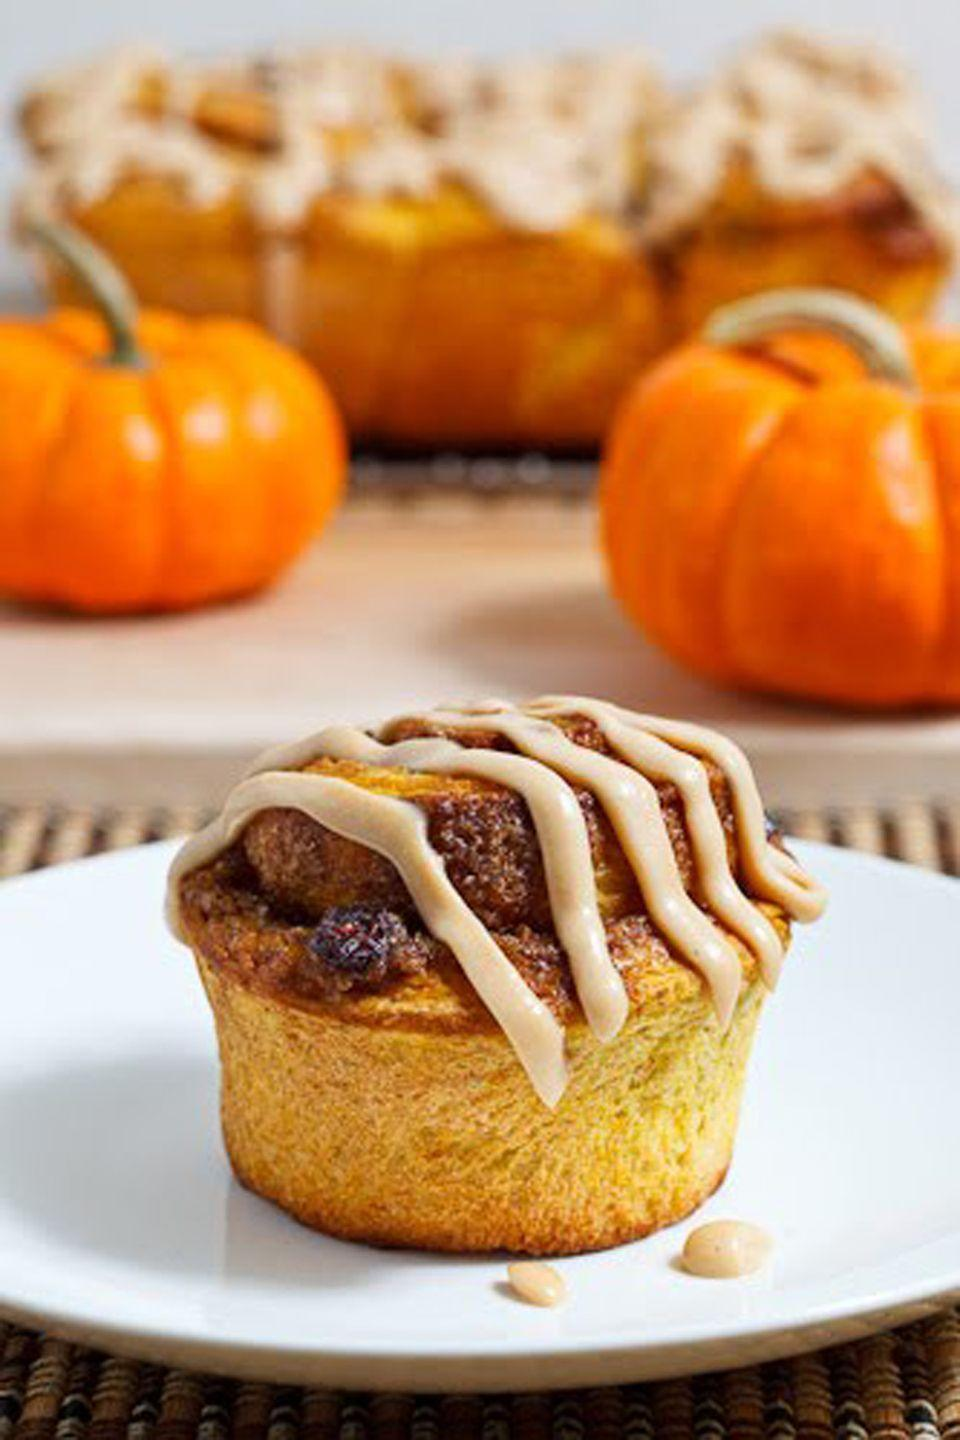 """<p>Add pumpkin puree to your favorite cinnamon bun recipe, and top it off with caramel cream cheese frosting for a breakfast-ready twist on your favorite Thanksgiving dessert.</p><p><strong>Get the recipe at <a href=""""http://www.closetcooking.com/2010/11/pumpkin-pie-cinnamon-buns-with-caramel.html"""" rel=""""nofollow noopener"""" target=""""_blank"""" data-ylk=""""slk:Closet Cooking"""" class=""""link rapid-noclick-resp"""">Closet Cooking</a>.</strong></p>"""